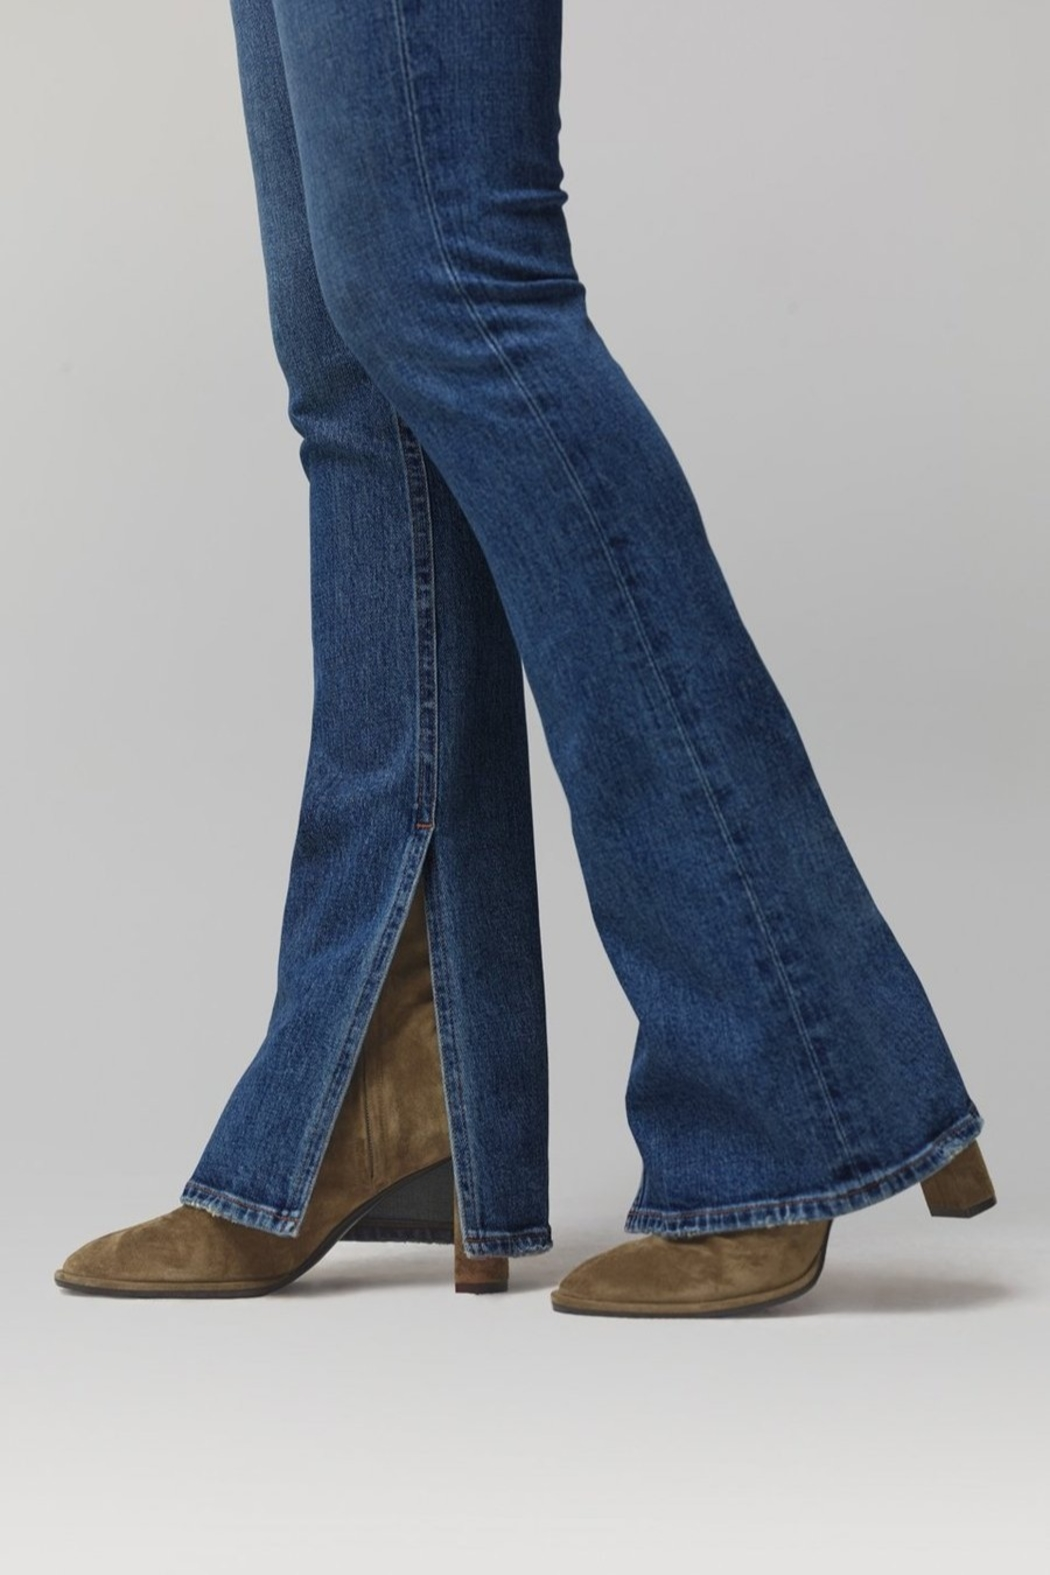 Citizens of Humanity Georgia Flare Jeans in Heist - Back Cropped Image